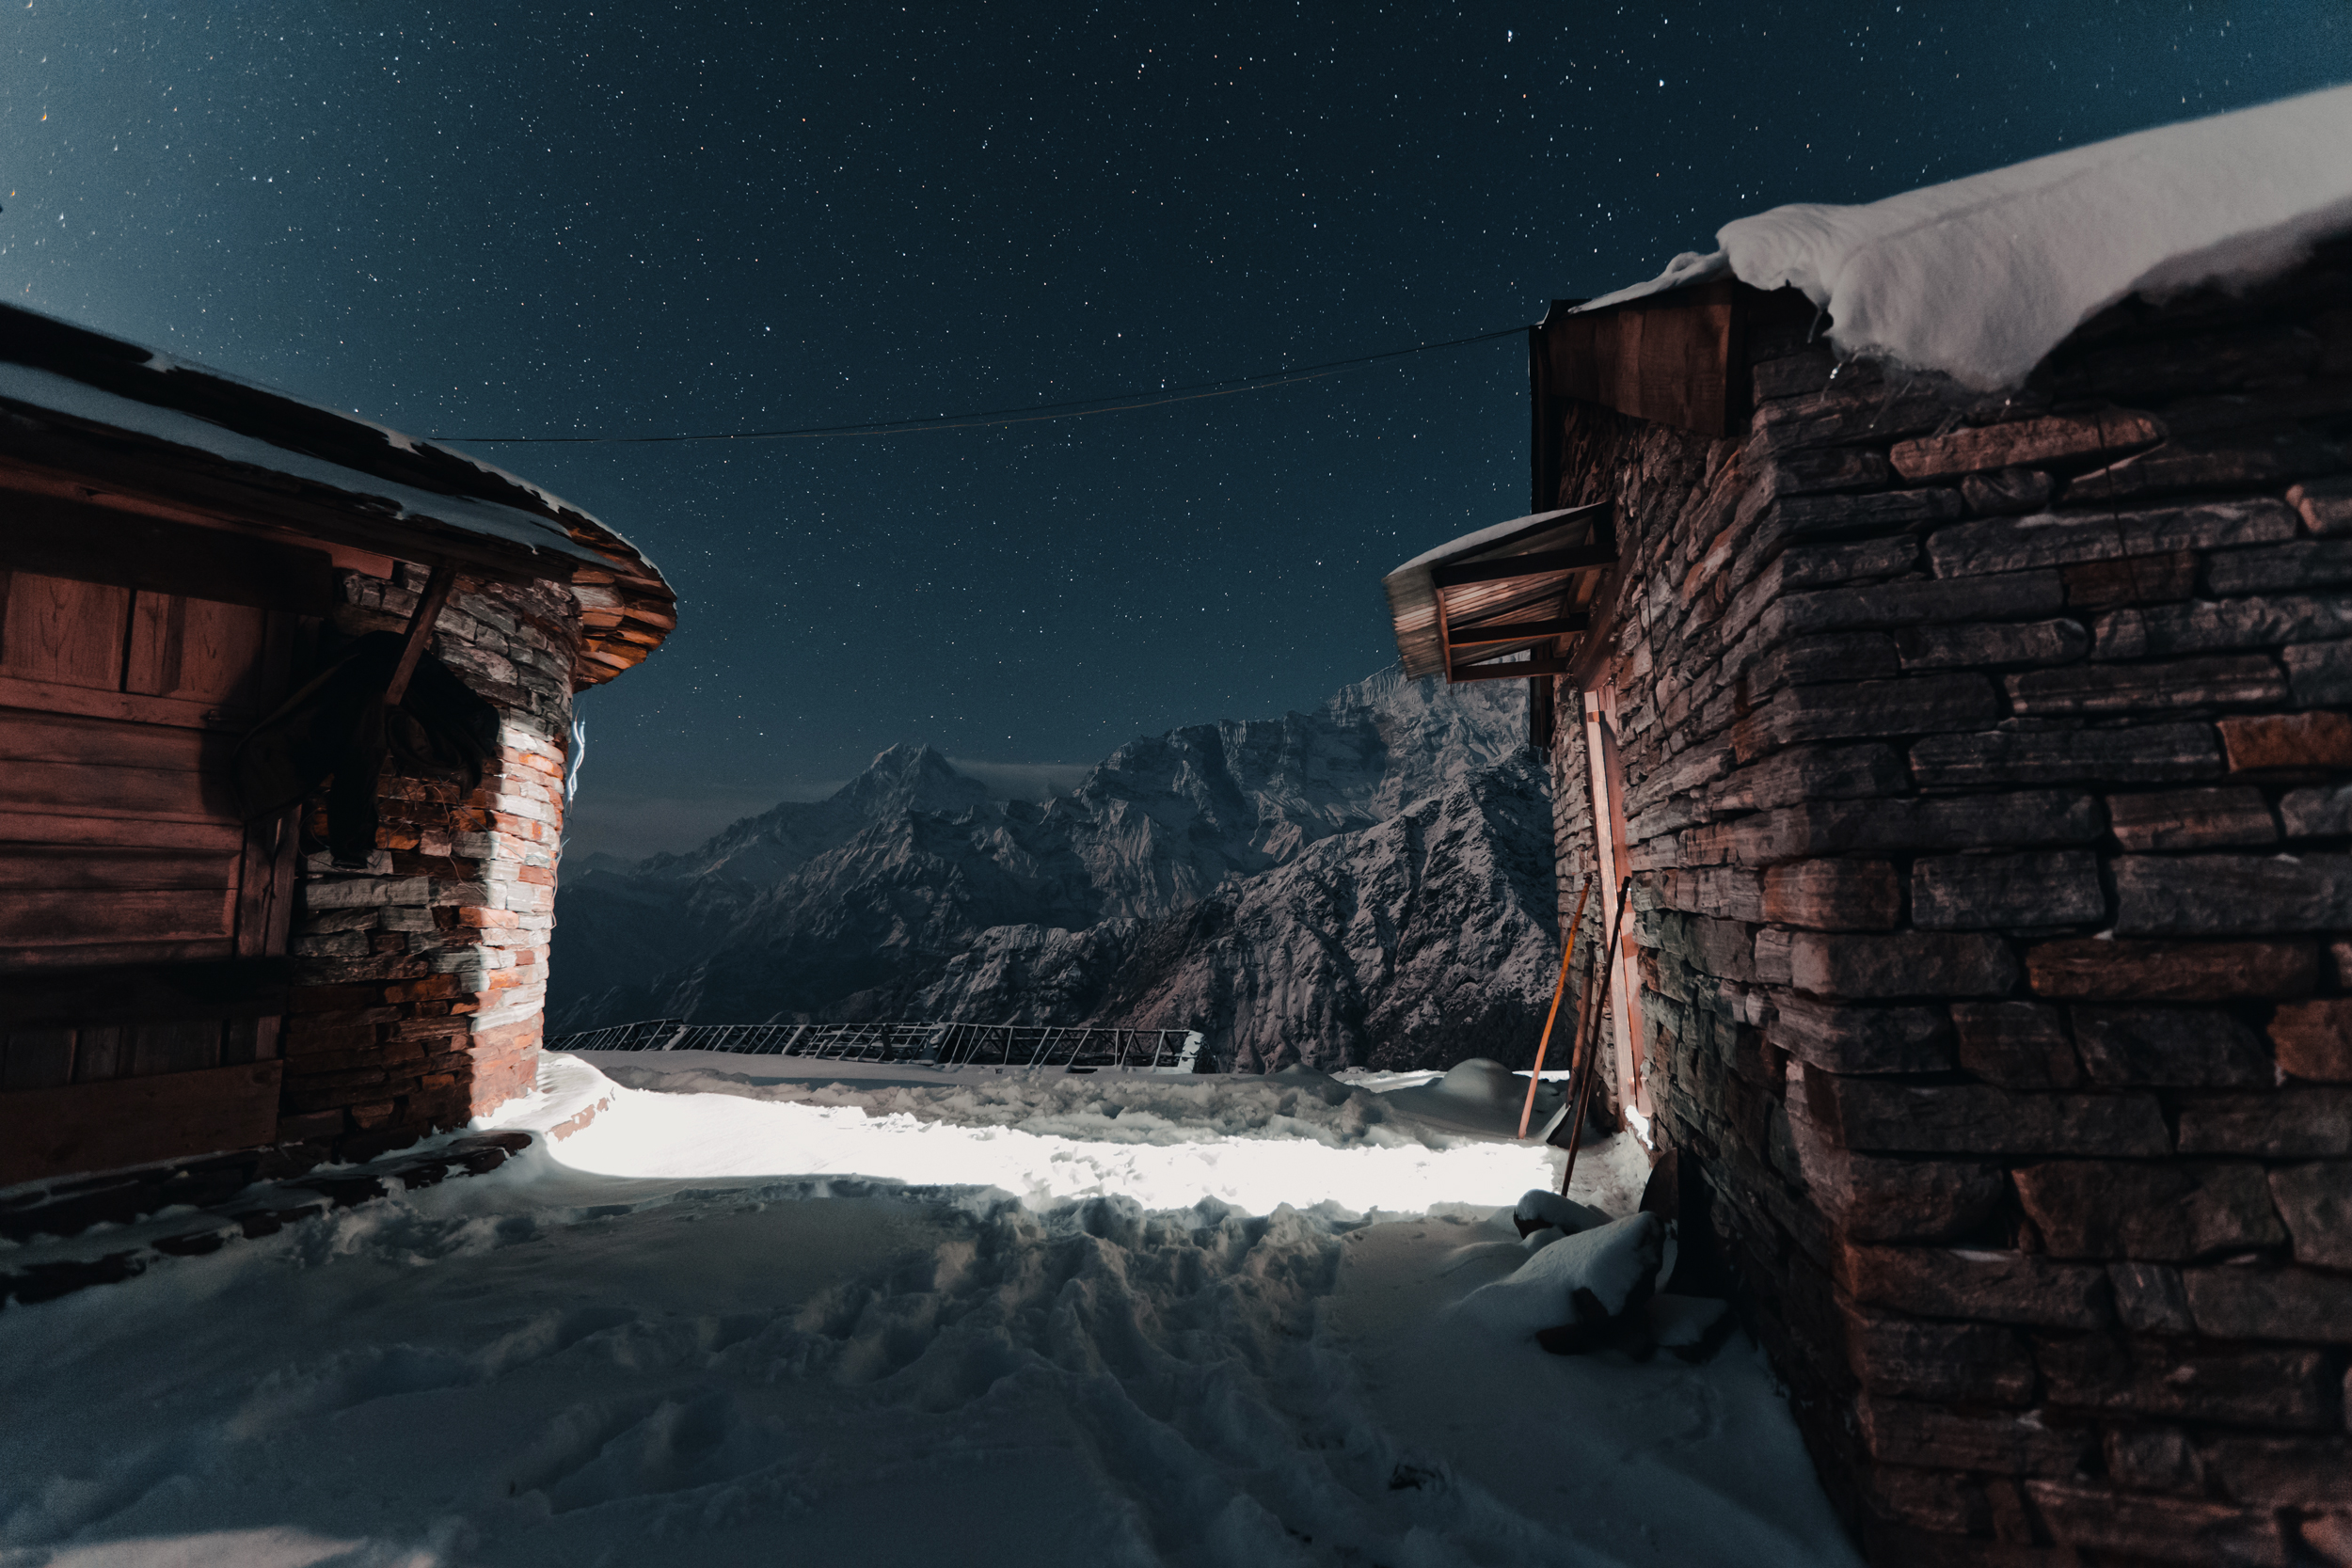 khopra-ridge-night-snow.jpg